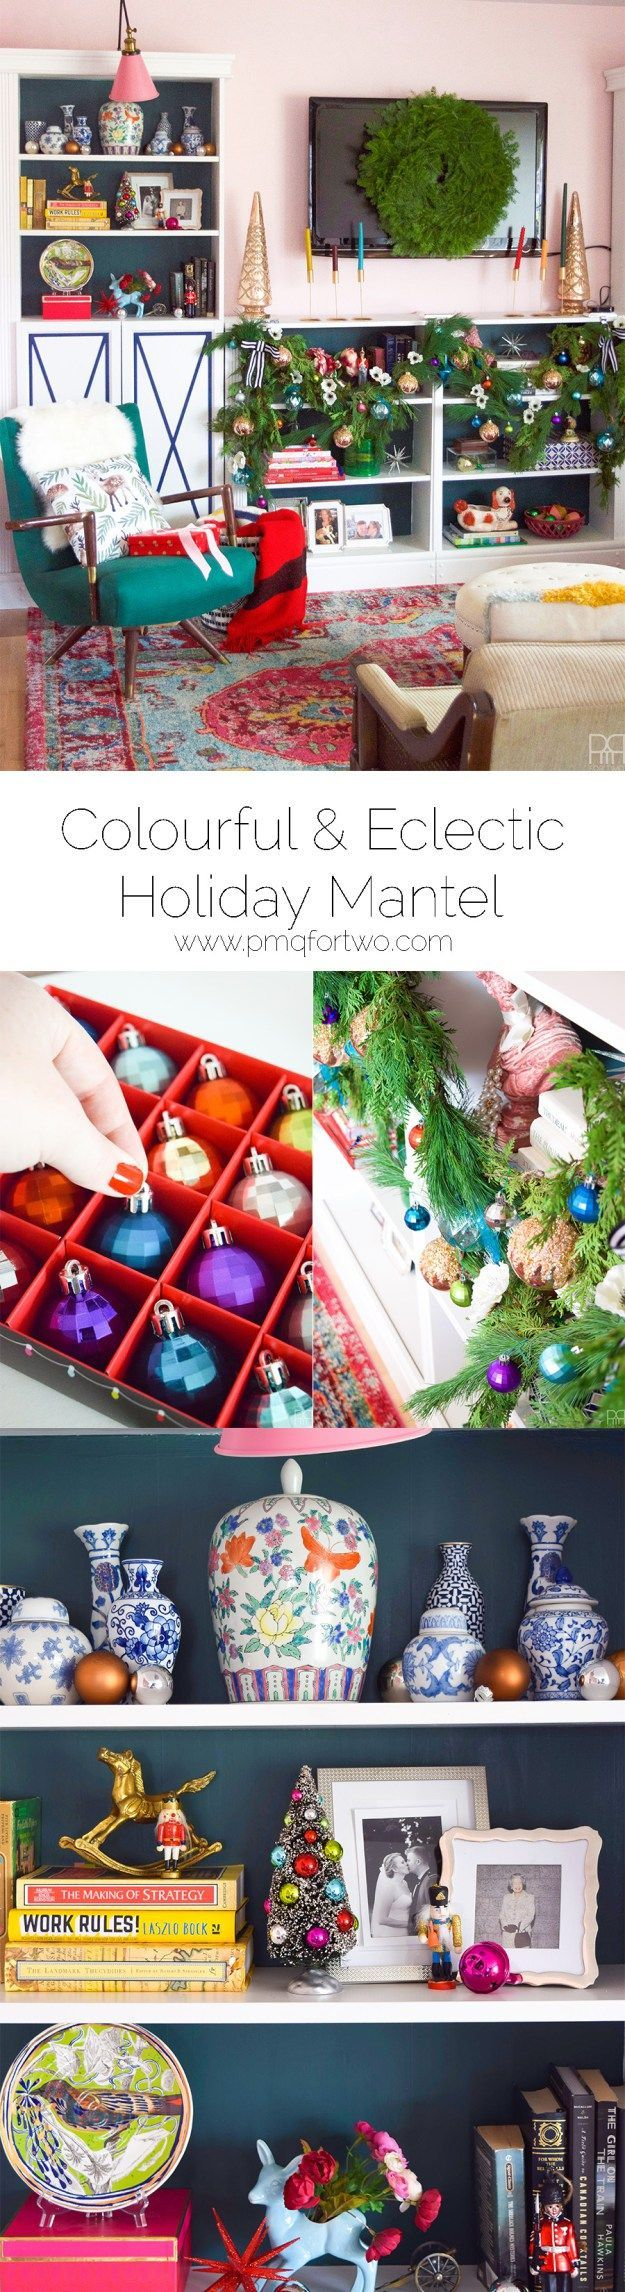 Tips for creating a Colourful & Eclectic Holiday Mantel when you don't have a mantel!